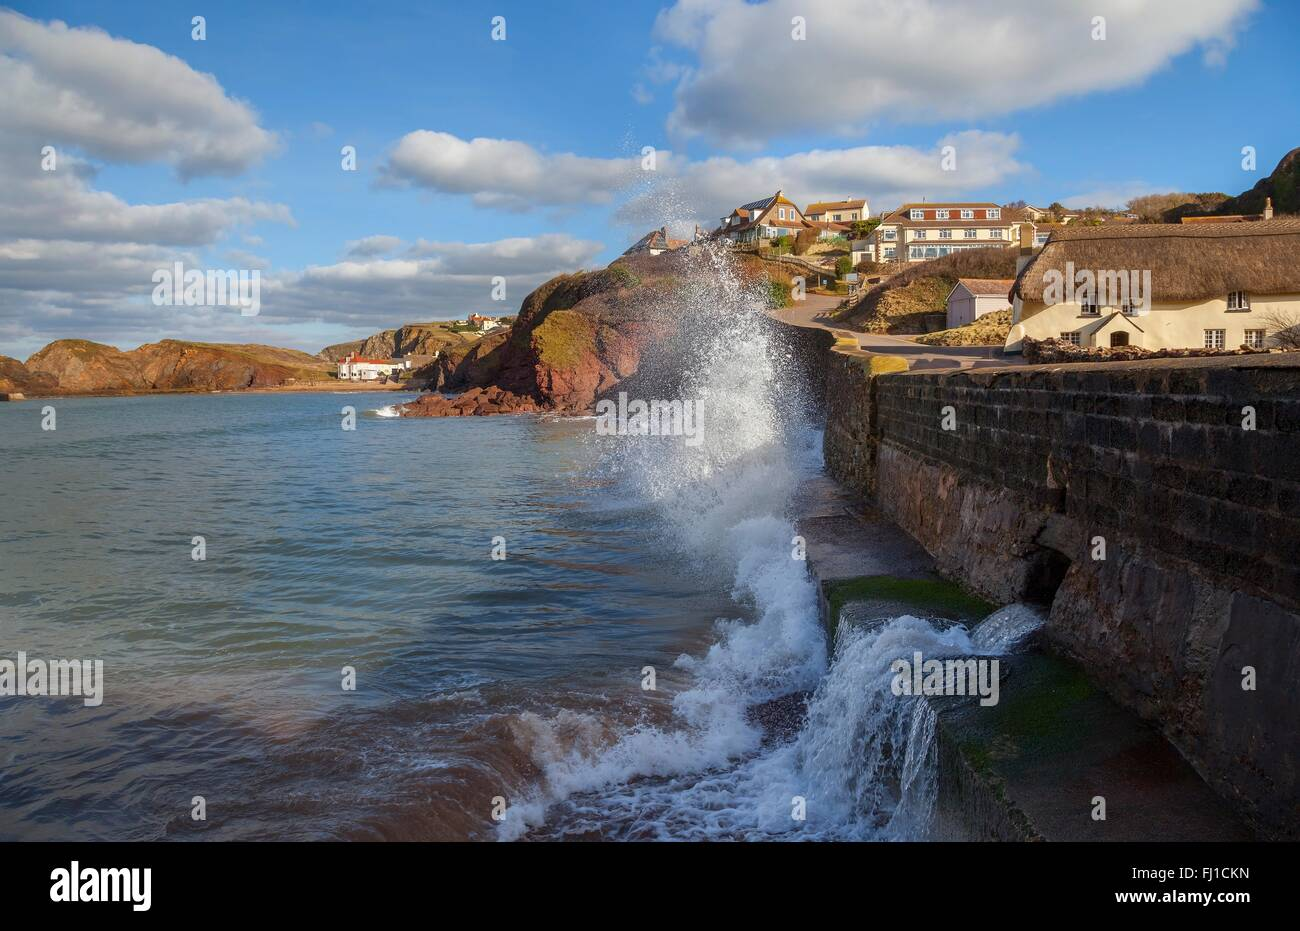 Waves crashing against the sea wall at Hope Cove, Devon, England - Stock Image